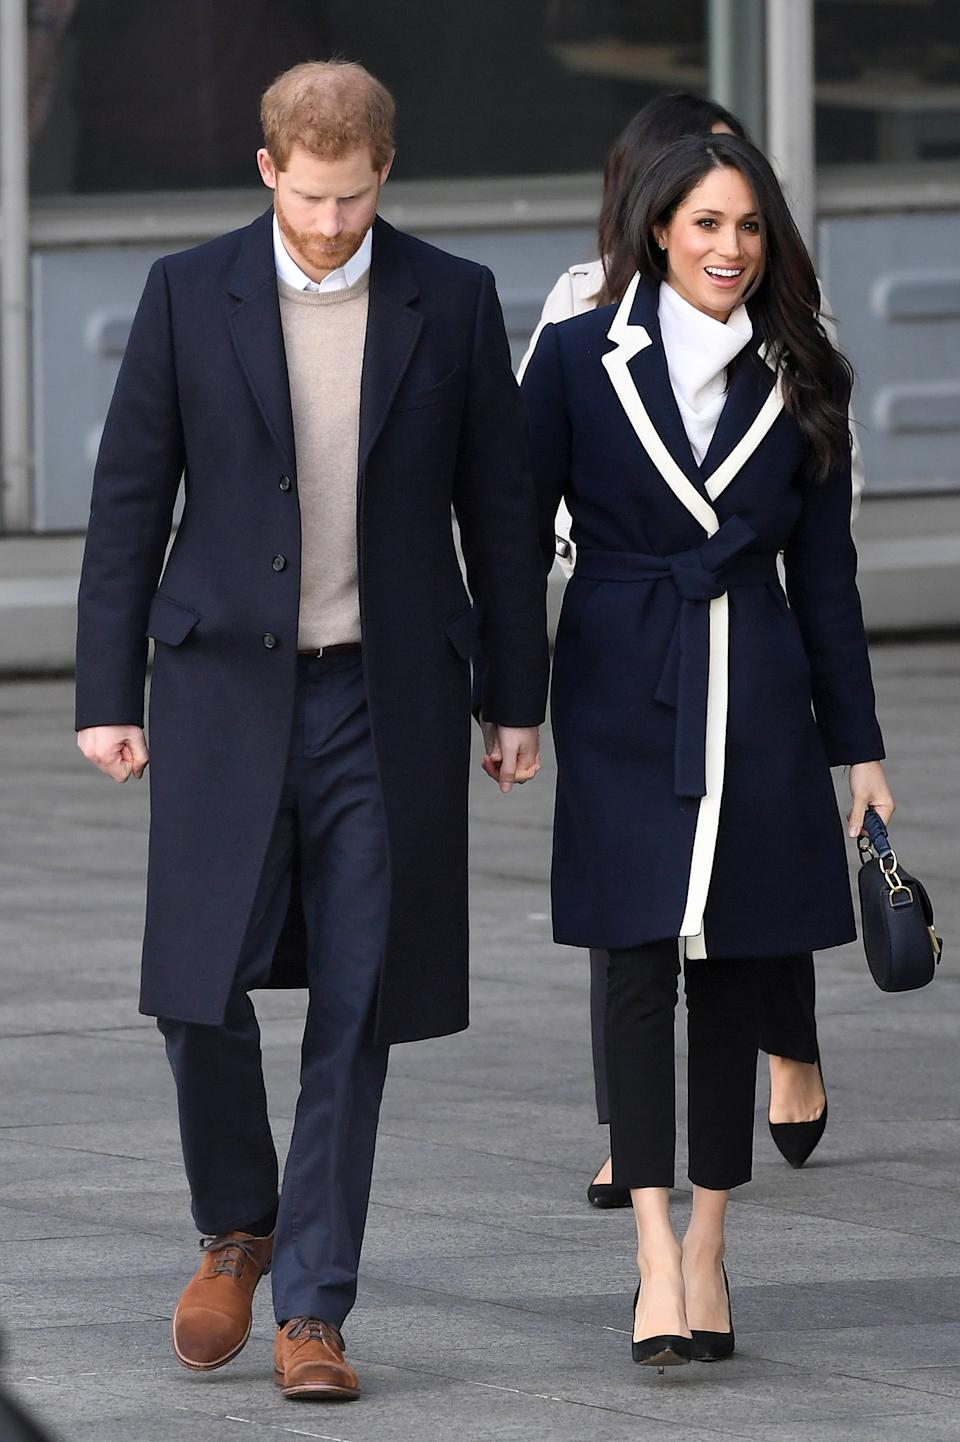 <p>Markle opted for a navy coat with white detail by J. Crew and matching white cowl neck sweater for a visit to Birmingham in March 2018. <em>(Image via Getty Images)</em></p>